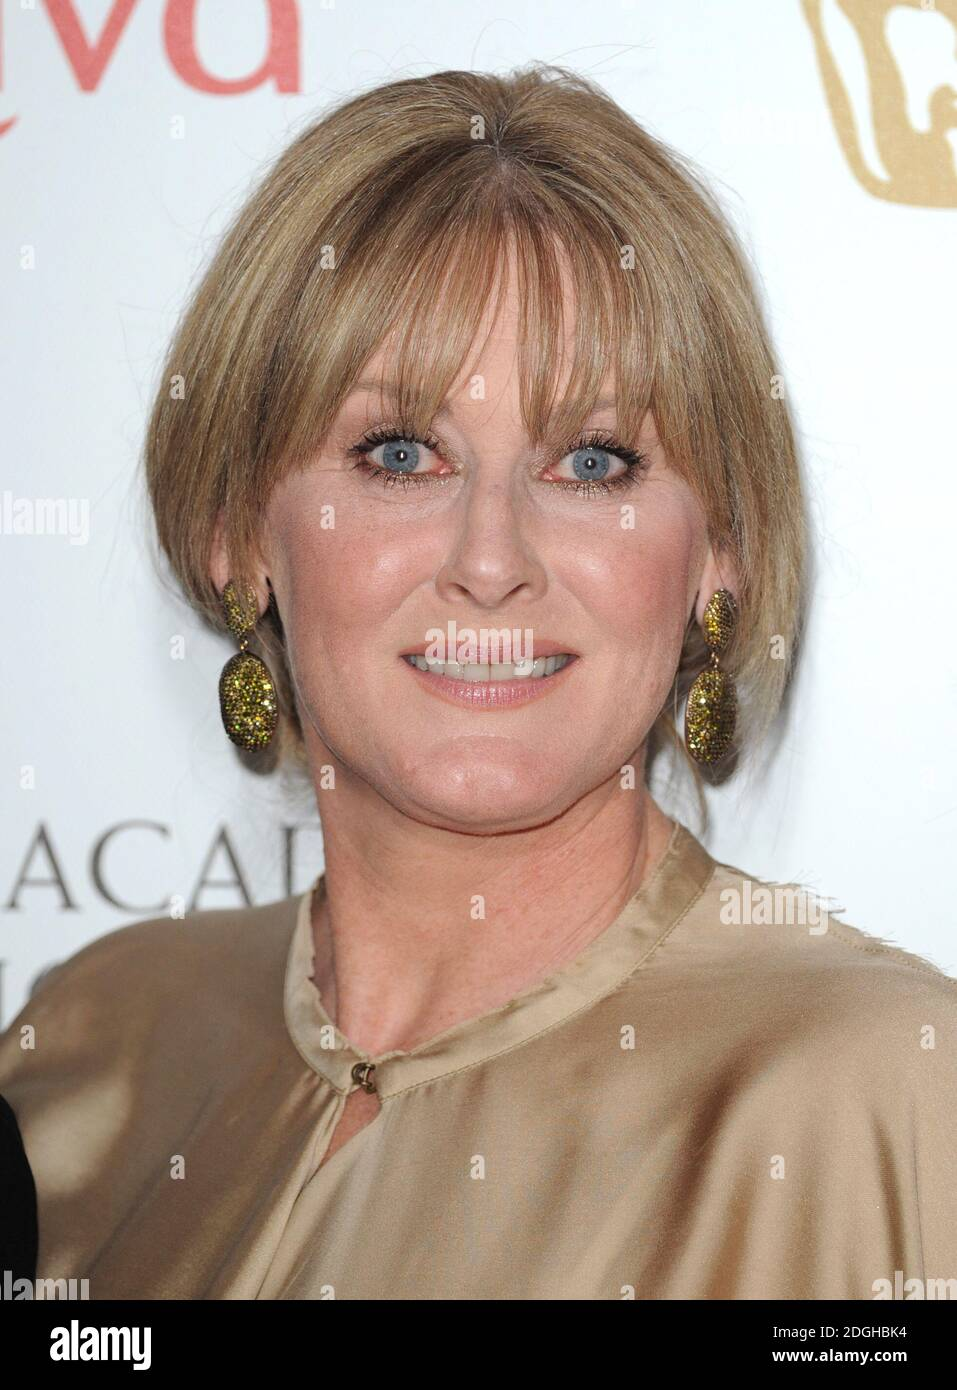 Page 2 Sarah Lancashire High Resolution Stock Photography And Images Alamy